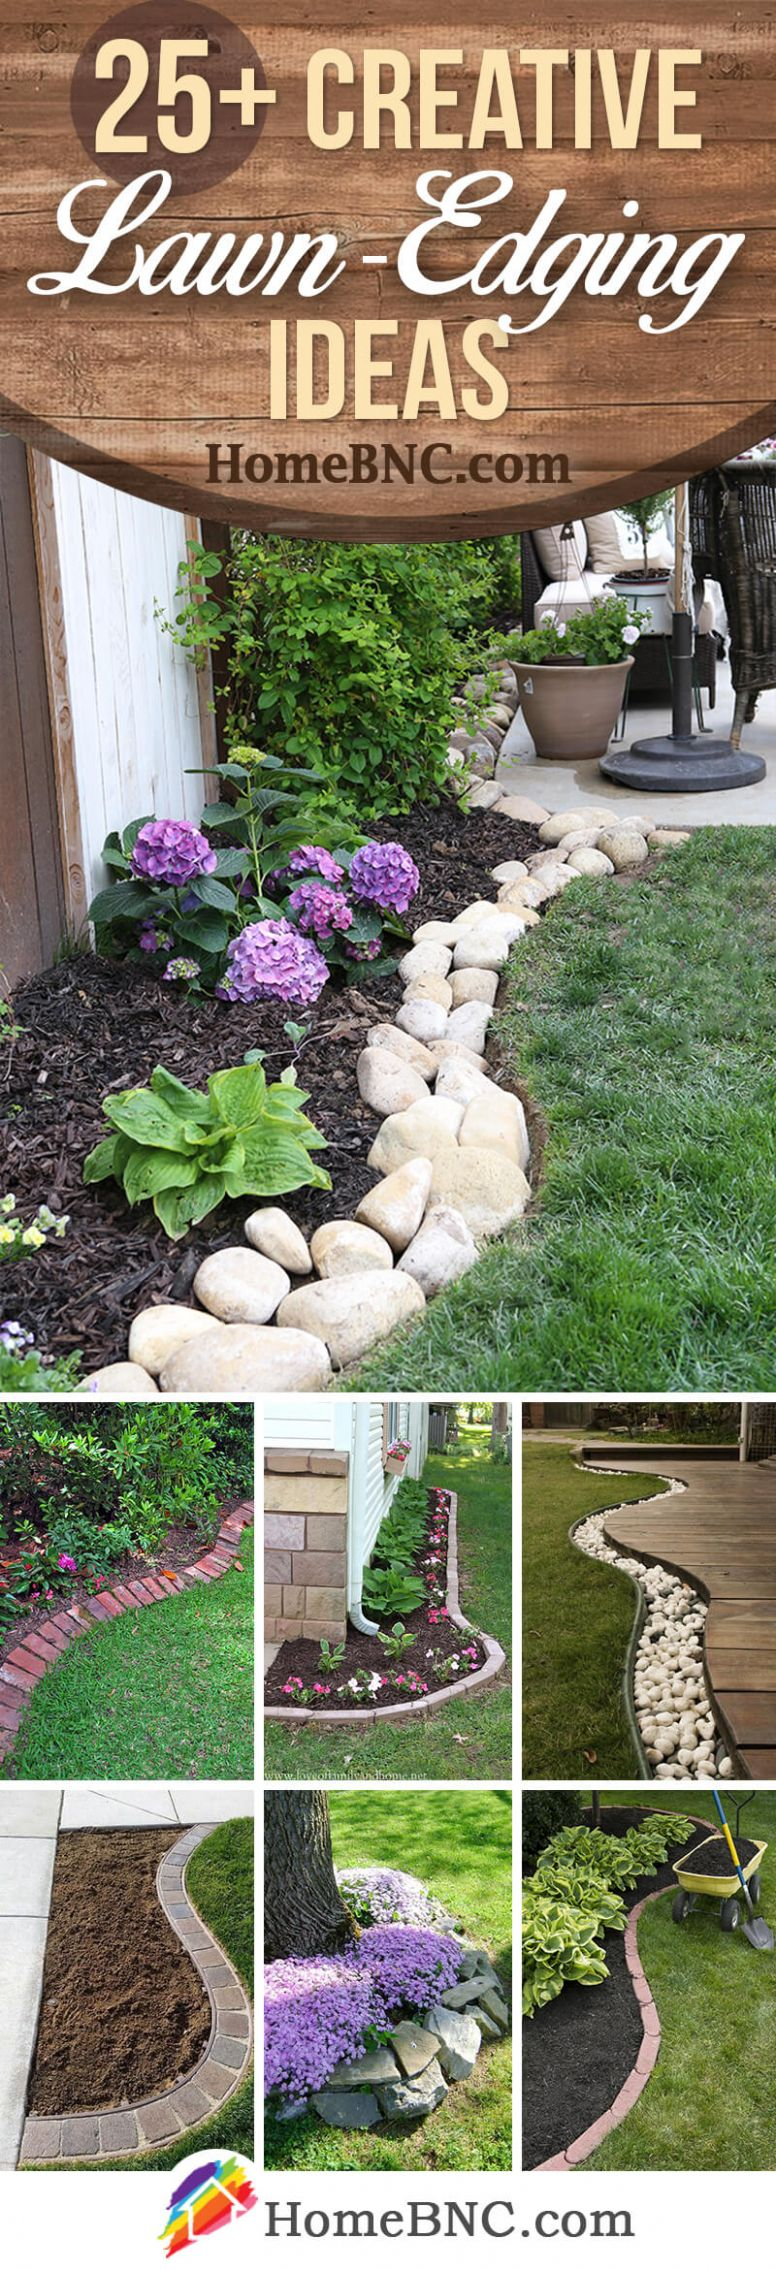 11+ Best Lawn-Edging Ideas and Designs for 11